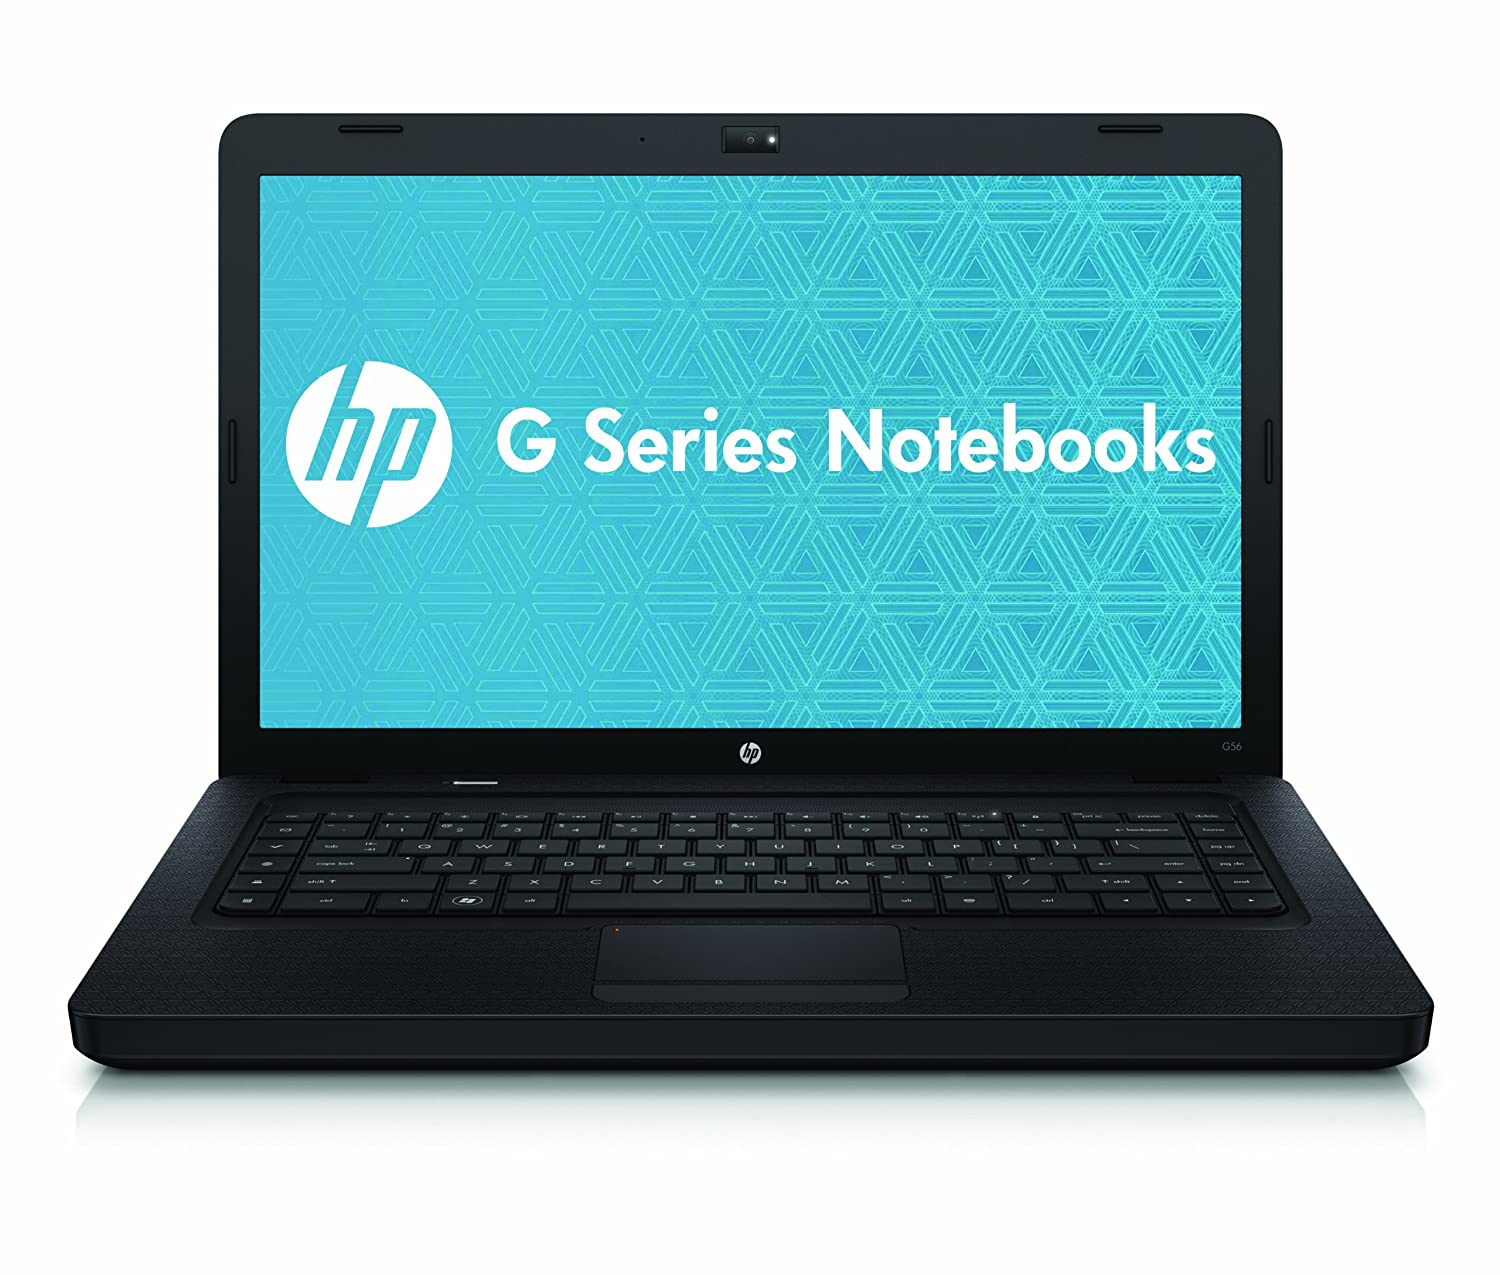 "HP G56-114SA 15.6"" Laptop (Intel Celeron 2Ghz, 3GB Ram, 500GB HDD, Windows  7 Home Premium 64-bit) - Black: Amazon.co.uk: Computers & Accessories"